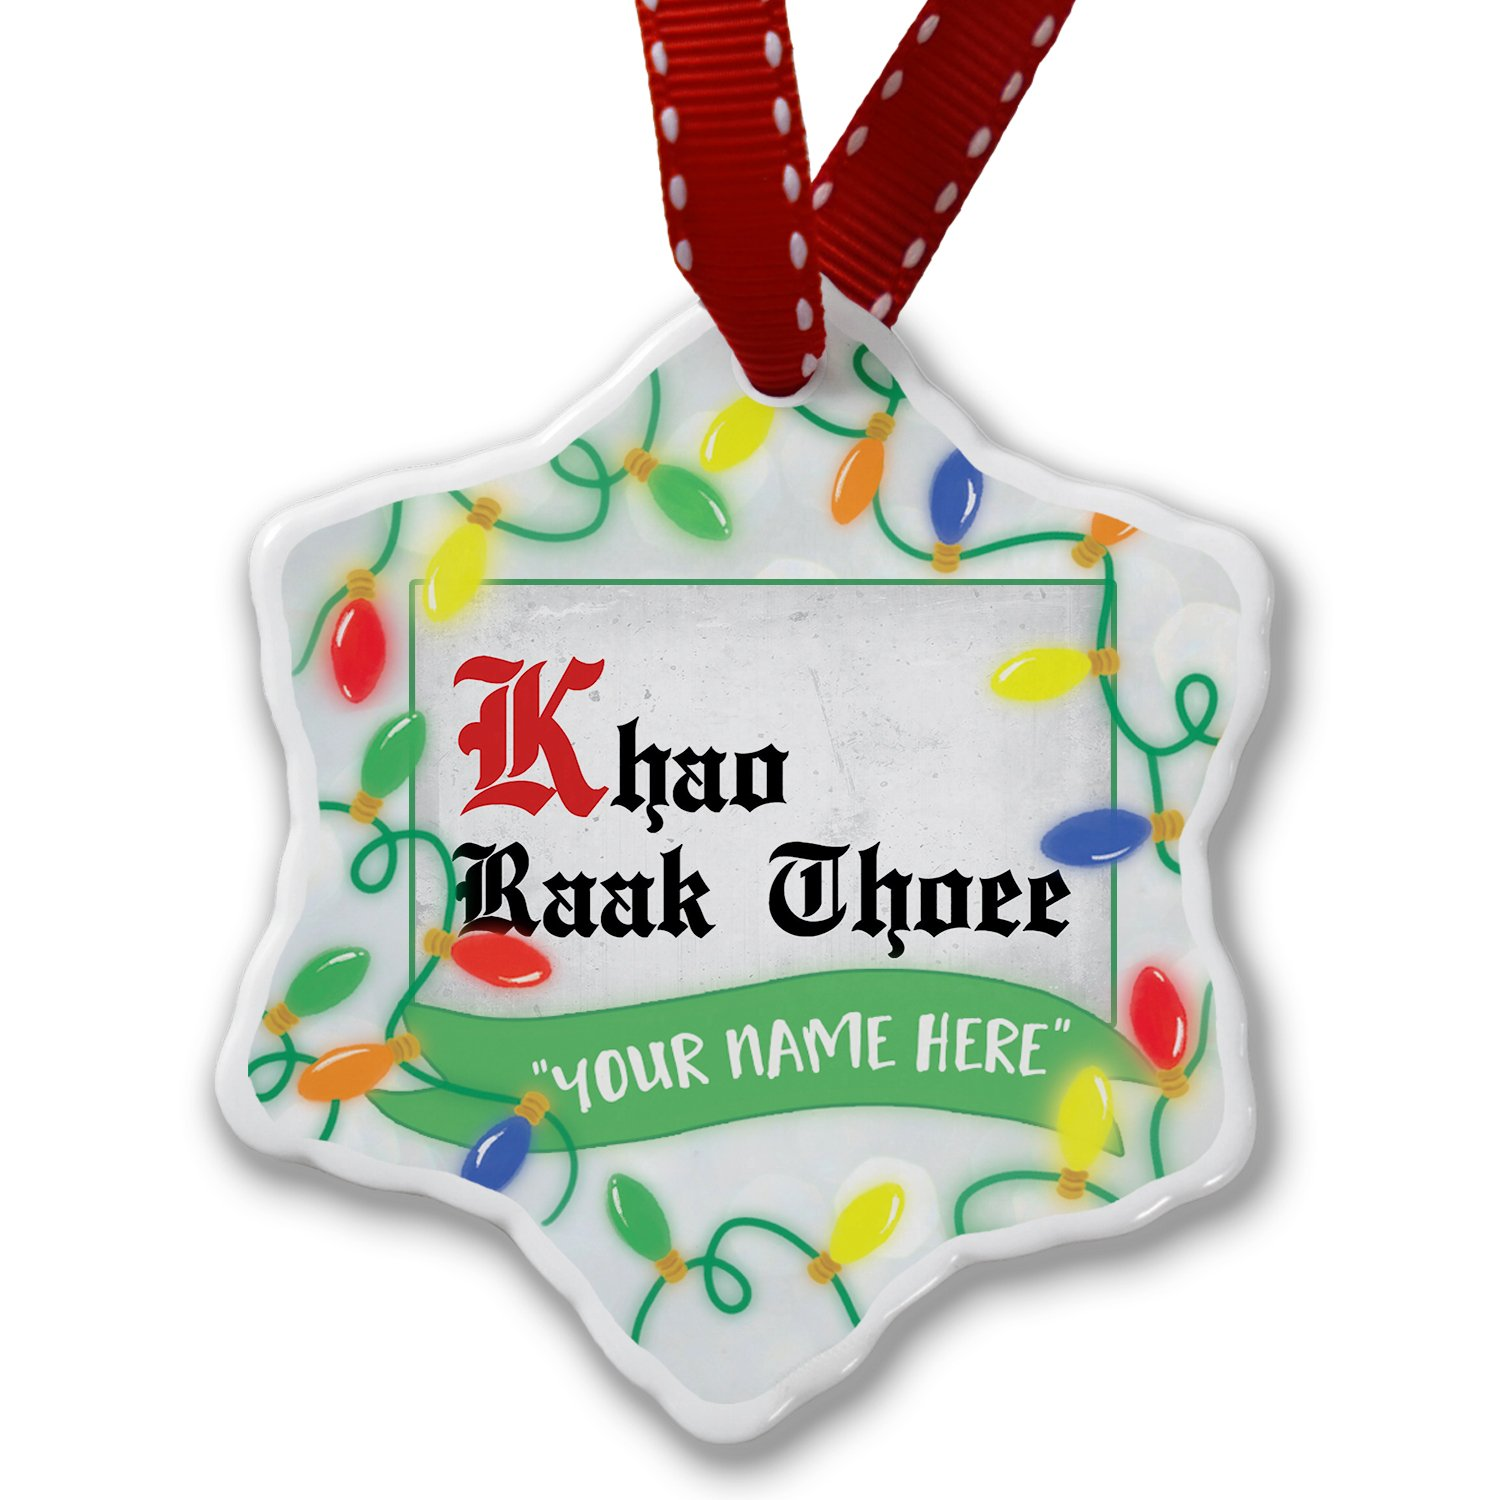 Personalized Name Christmas Ornament, I Love You ThaI Classic Print from Tailand NEONBLOND